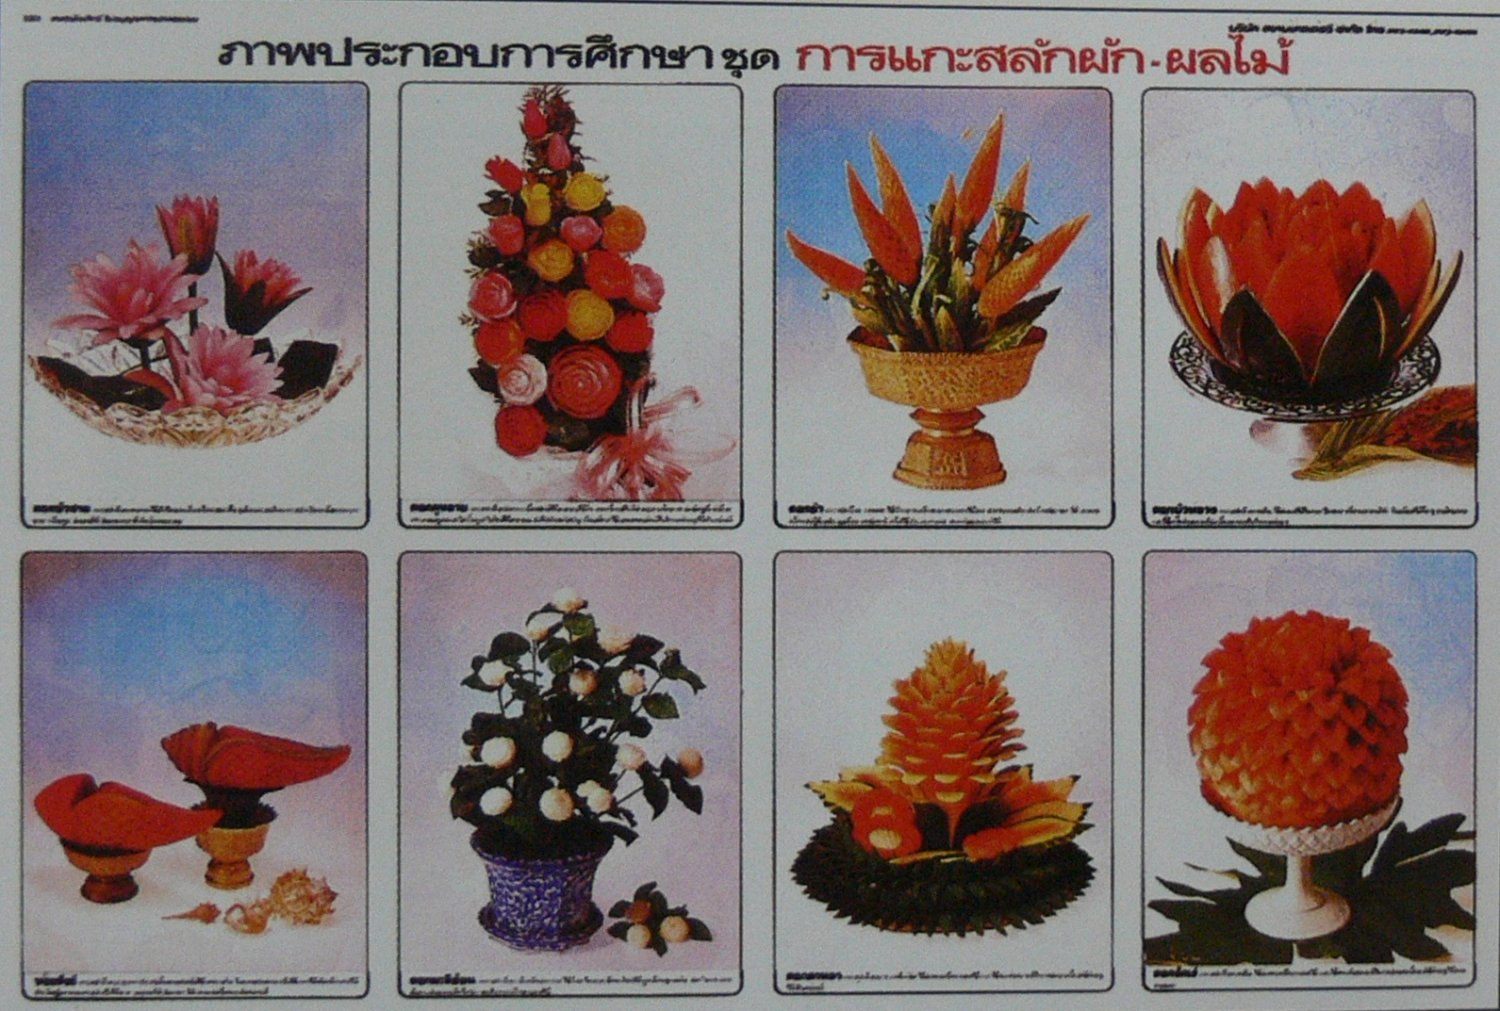 Thai Traditional Style Flower Fruit Carve Collection Poster Water Melon Rose Jasmine